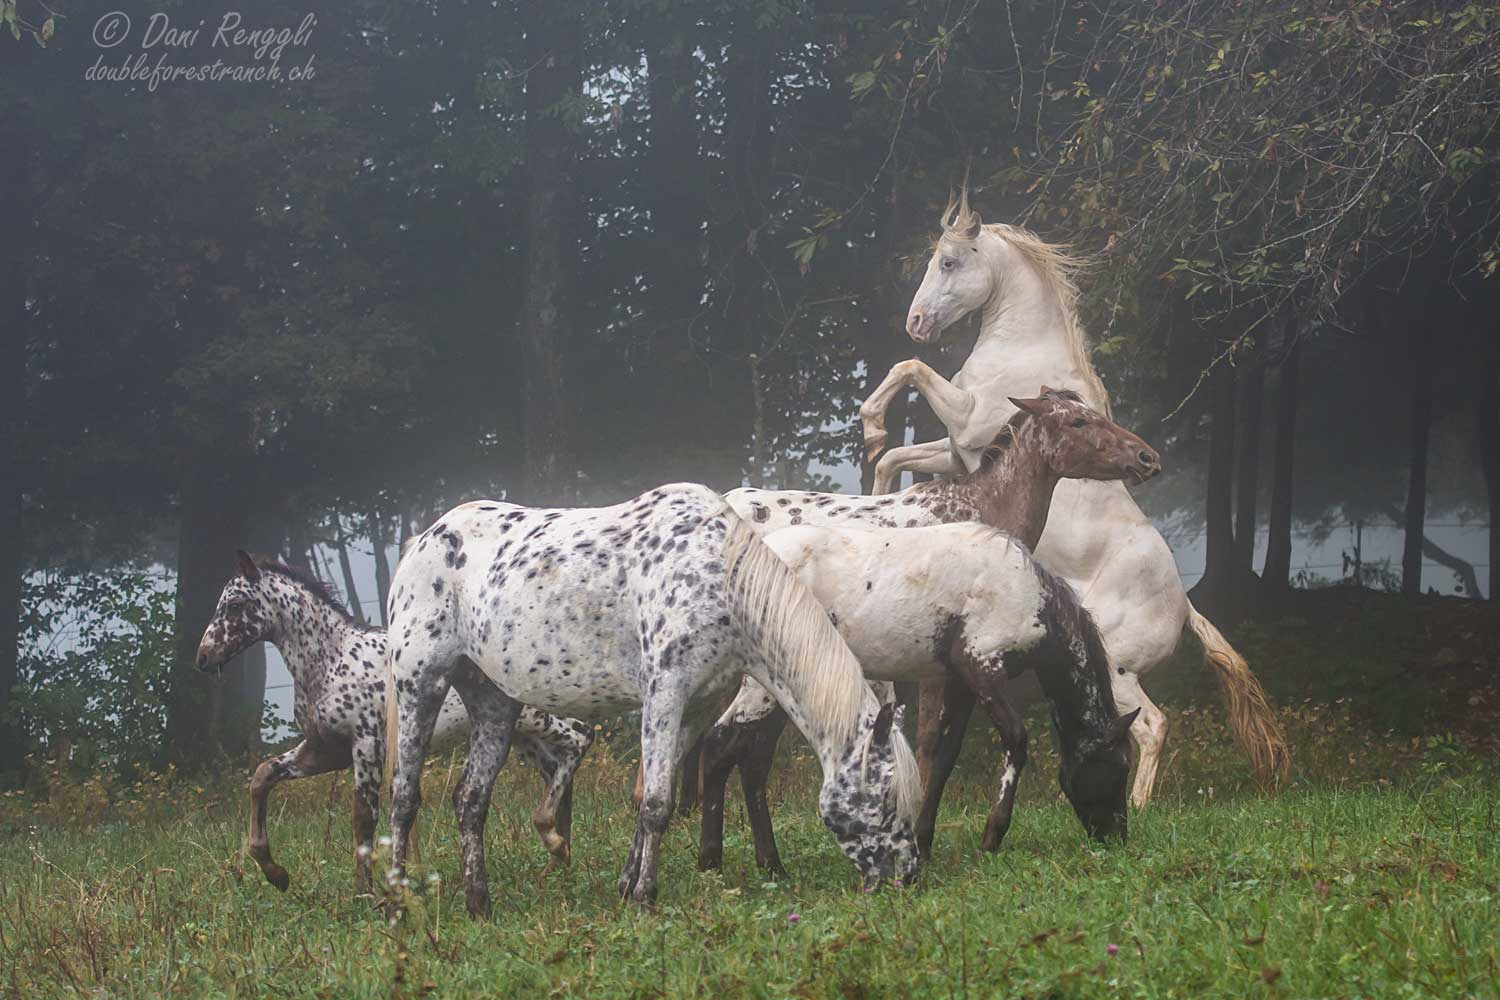 DFR Doundation Appaloosa